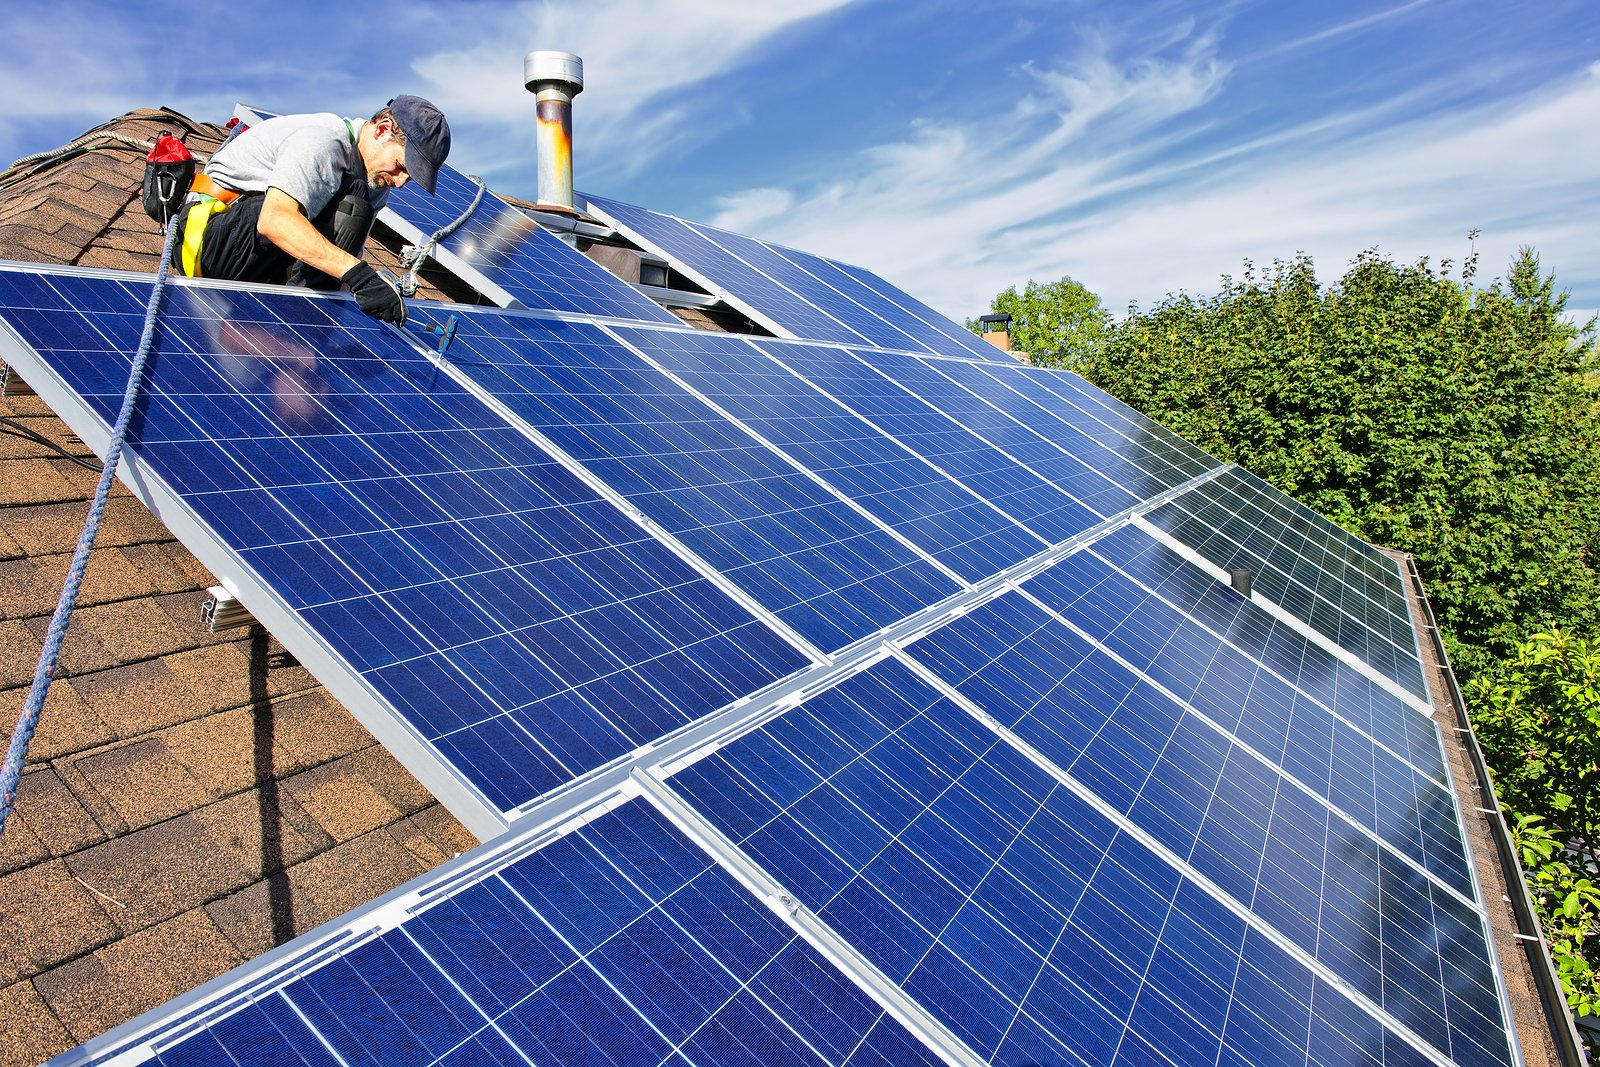 Installing Solar Panels Can Increase Your Home's Value When it Comes Time to Sell